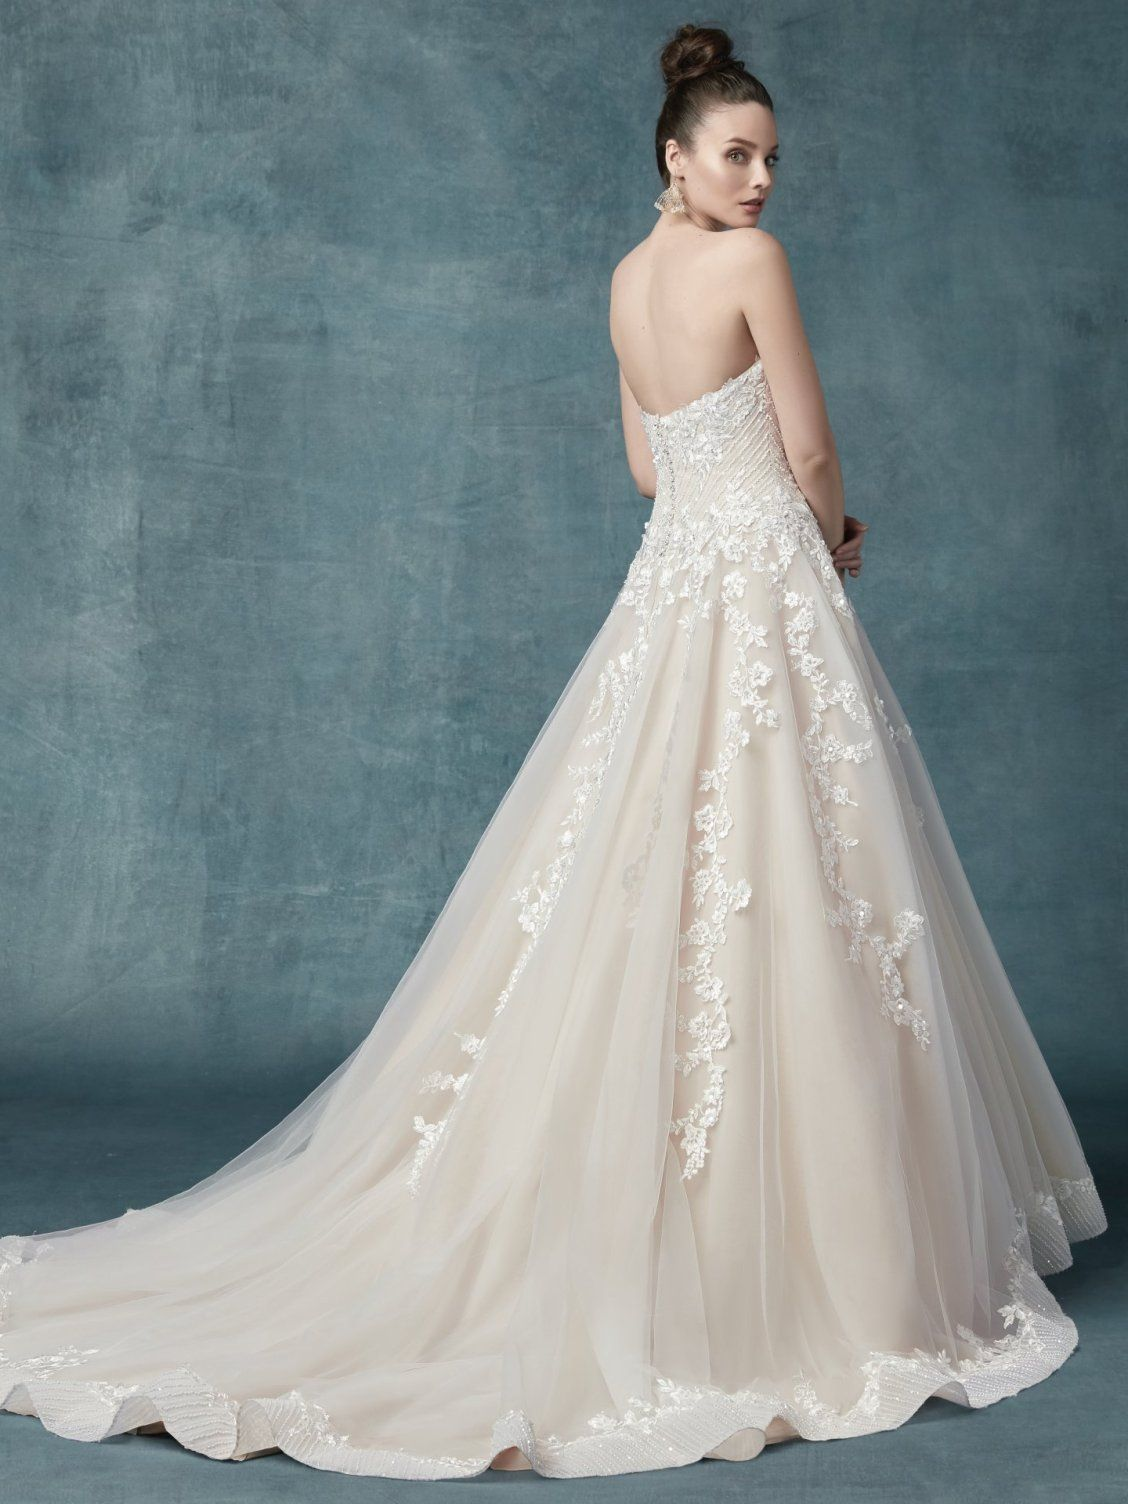 a1592875707 ... Floral lace motifs dance over tulle in this unique princess ballgown